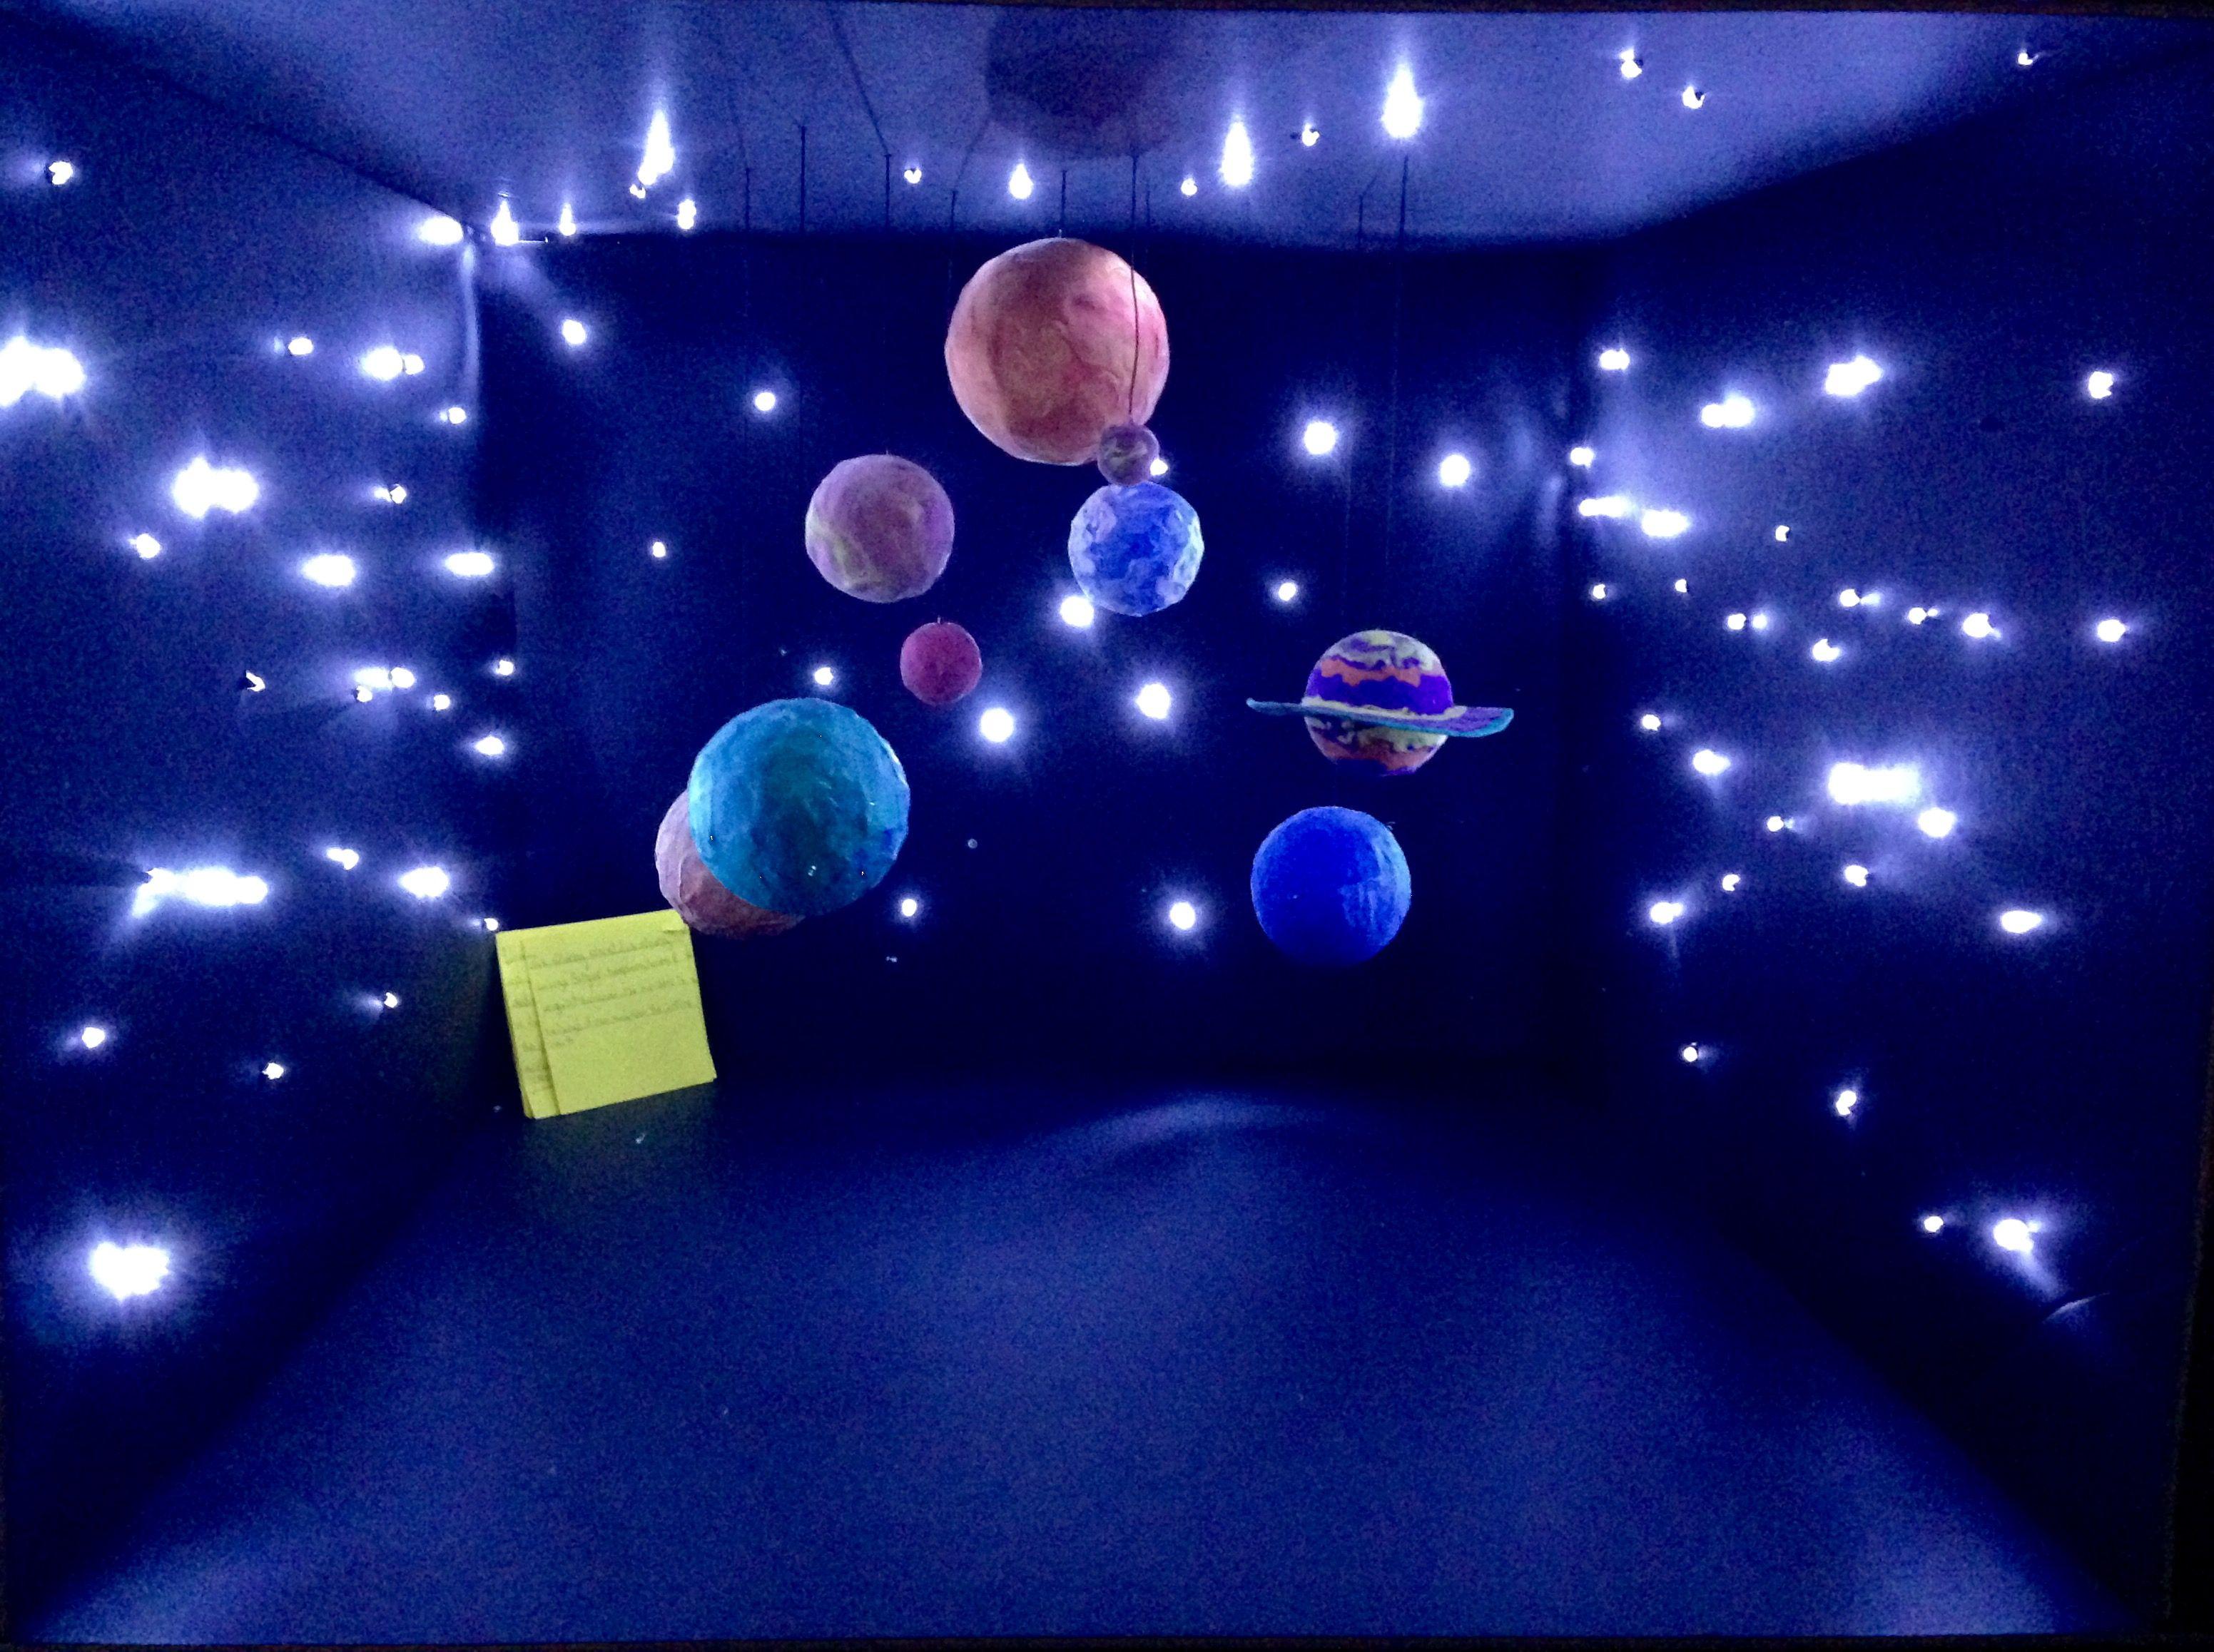 Solar system project for kids by Joumana Adham DIY